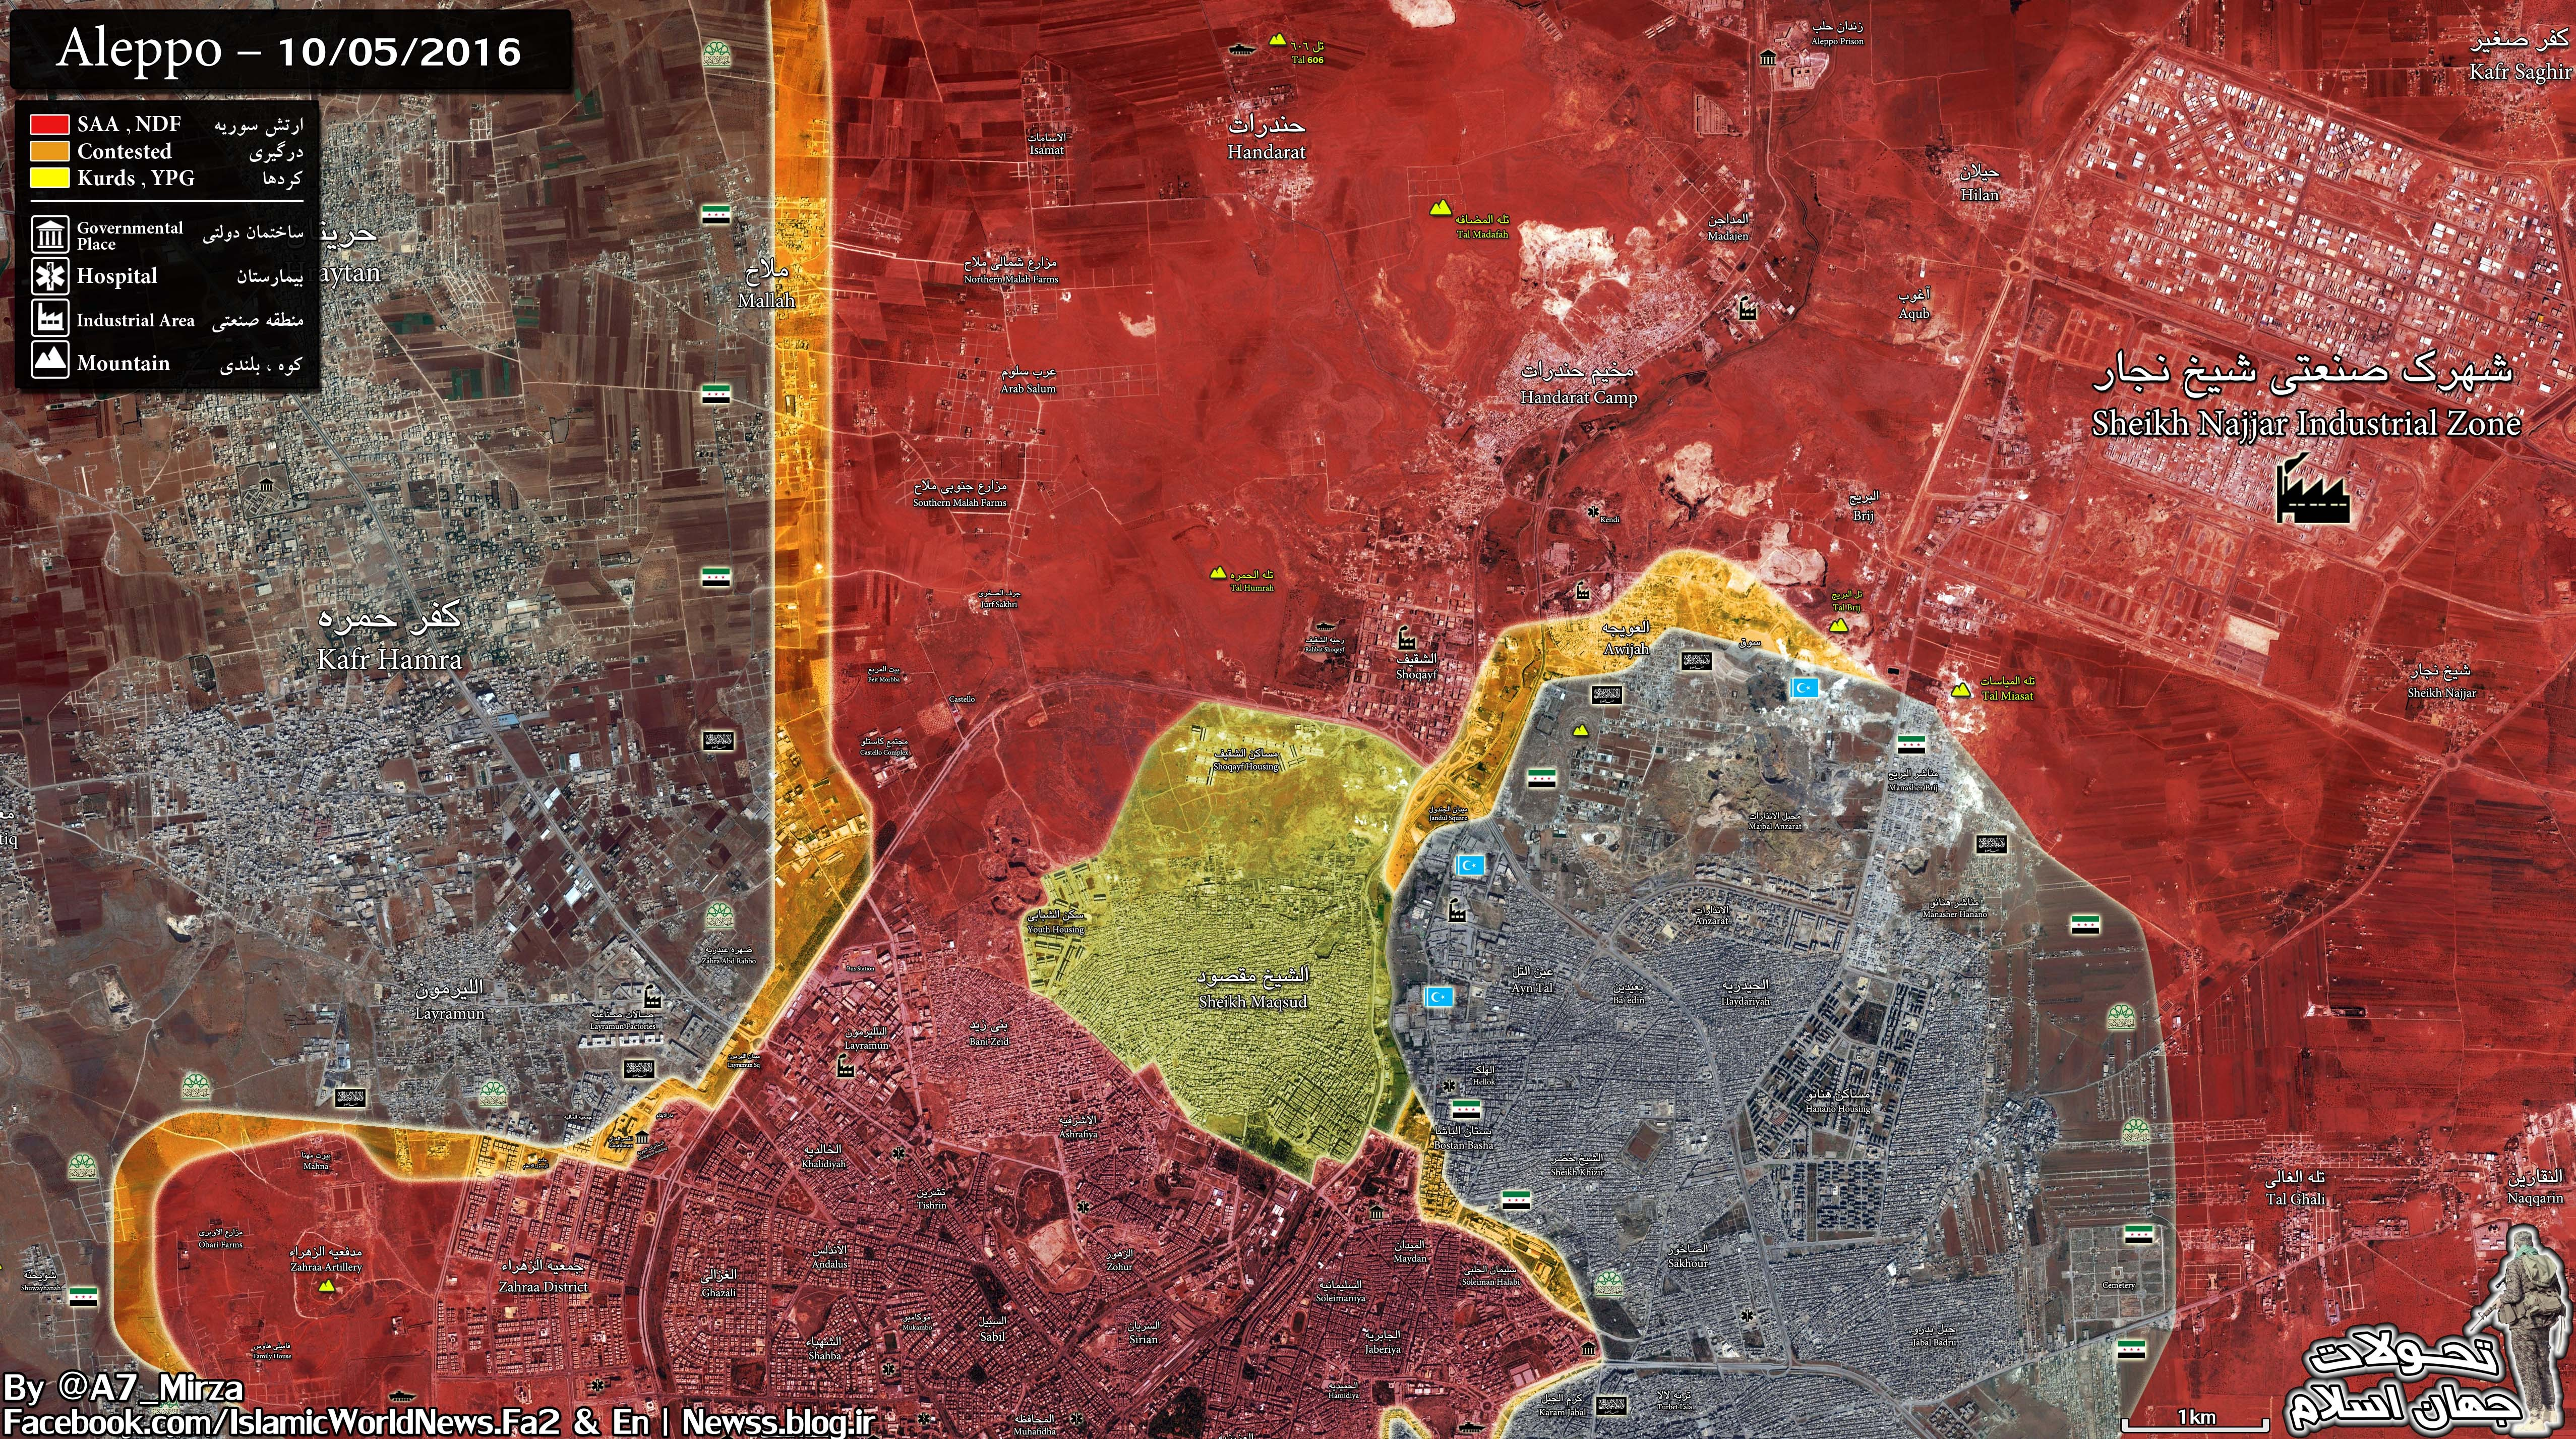 Overview of Military Situation in Aleppo City, October 6, 2016